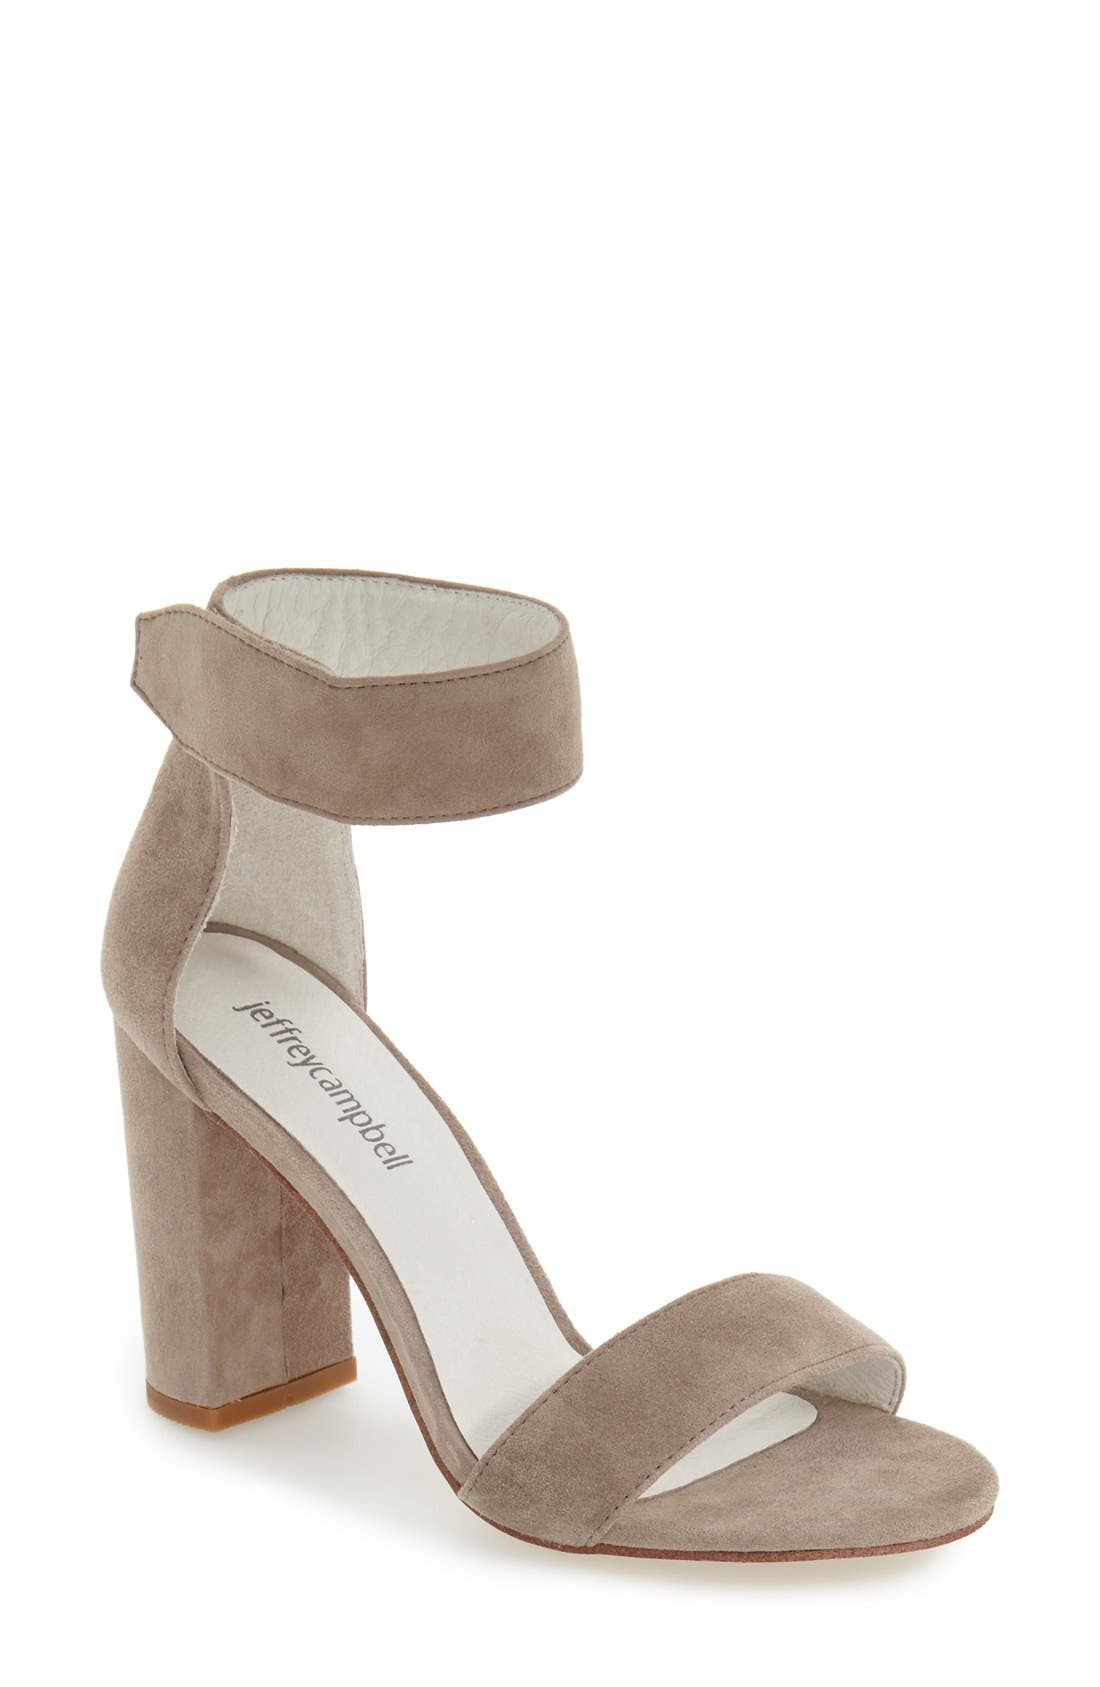 'Lindsay' Ankle Strap Sandal,                             Main thumbnail 2, color,